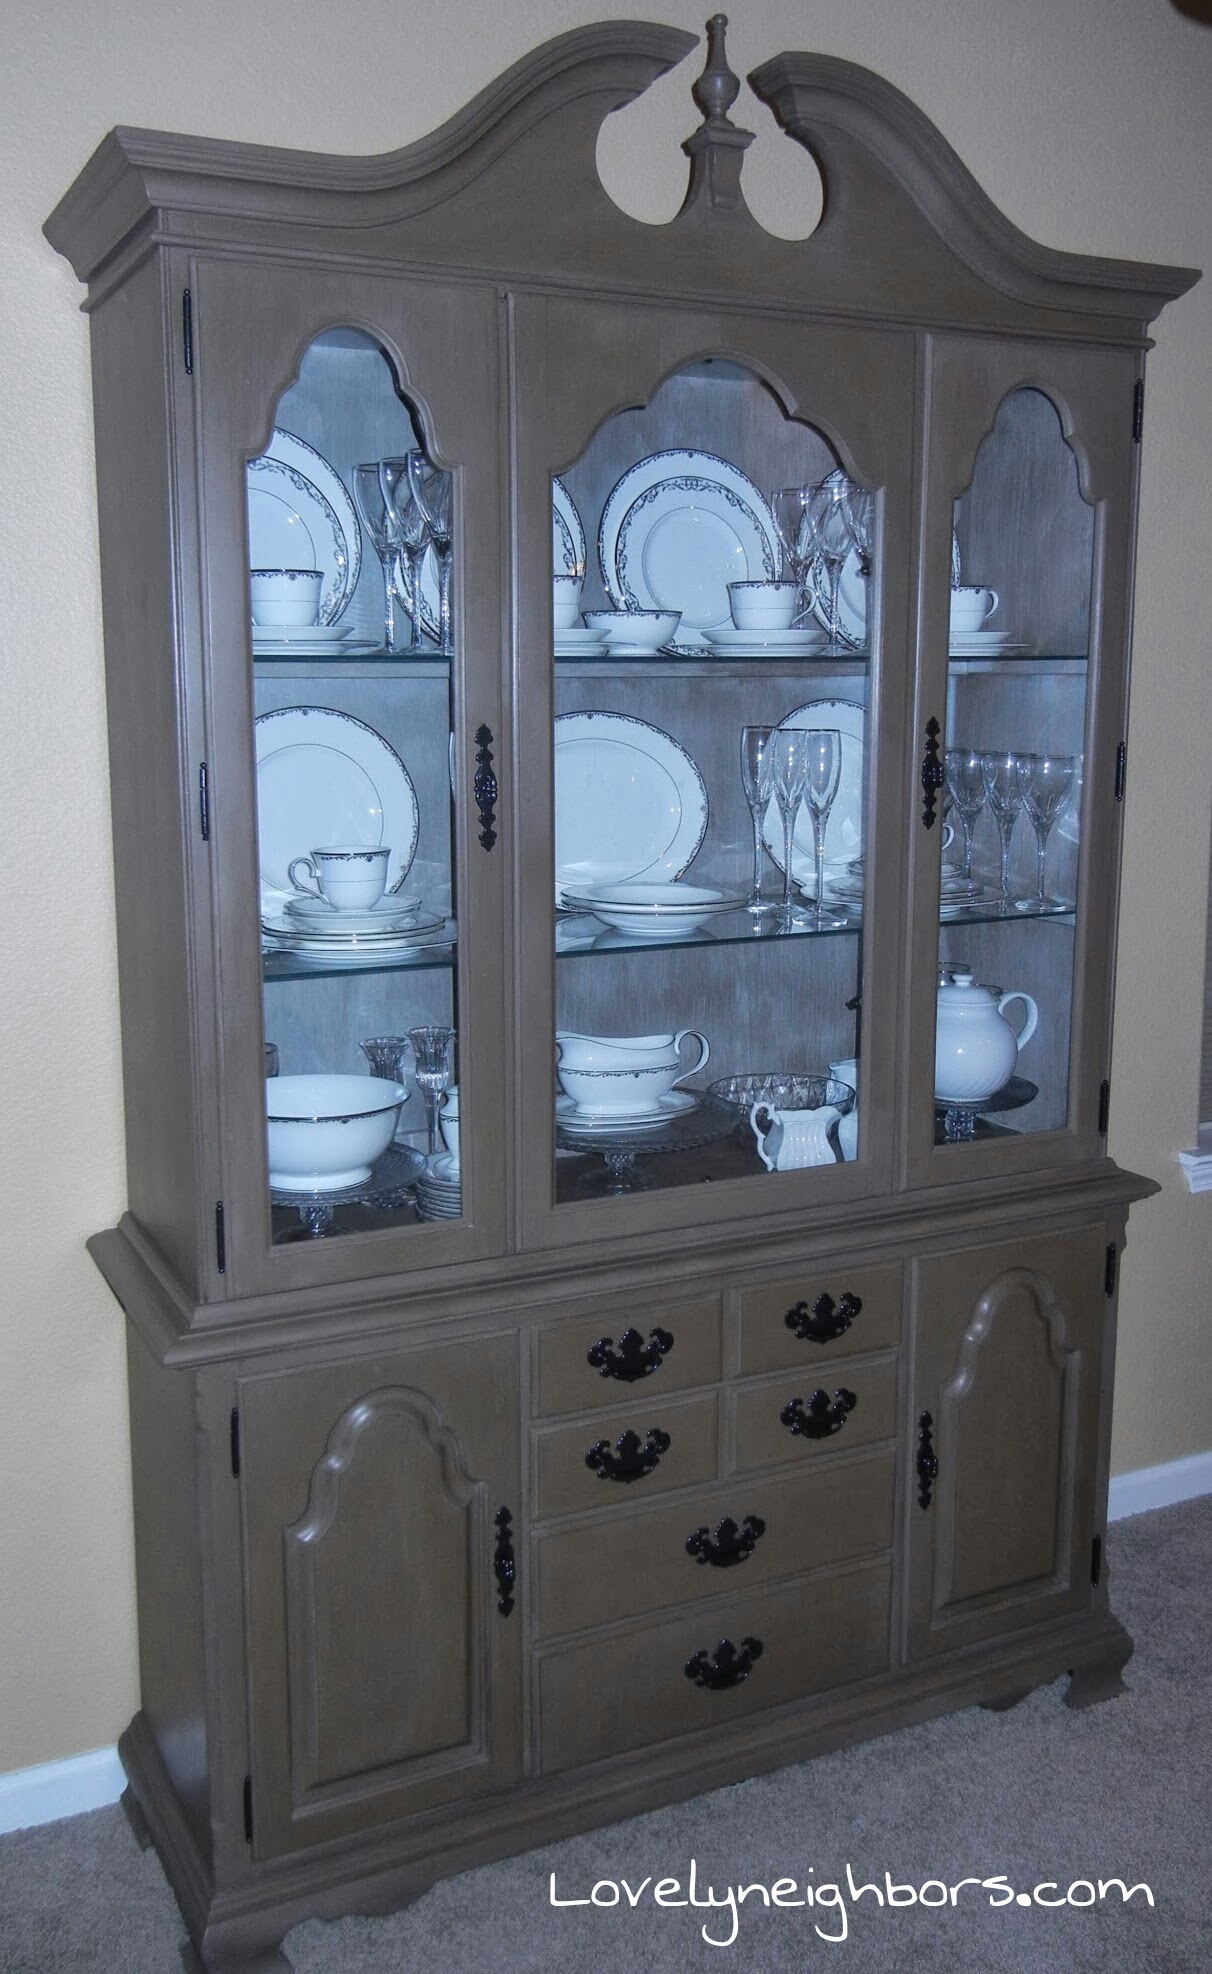 Lovely Neighbors Chalk Painted China Cabinet Lovely Neighbors Chalk Painted  China Cabinet